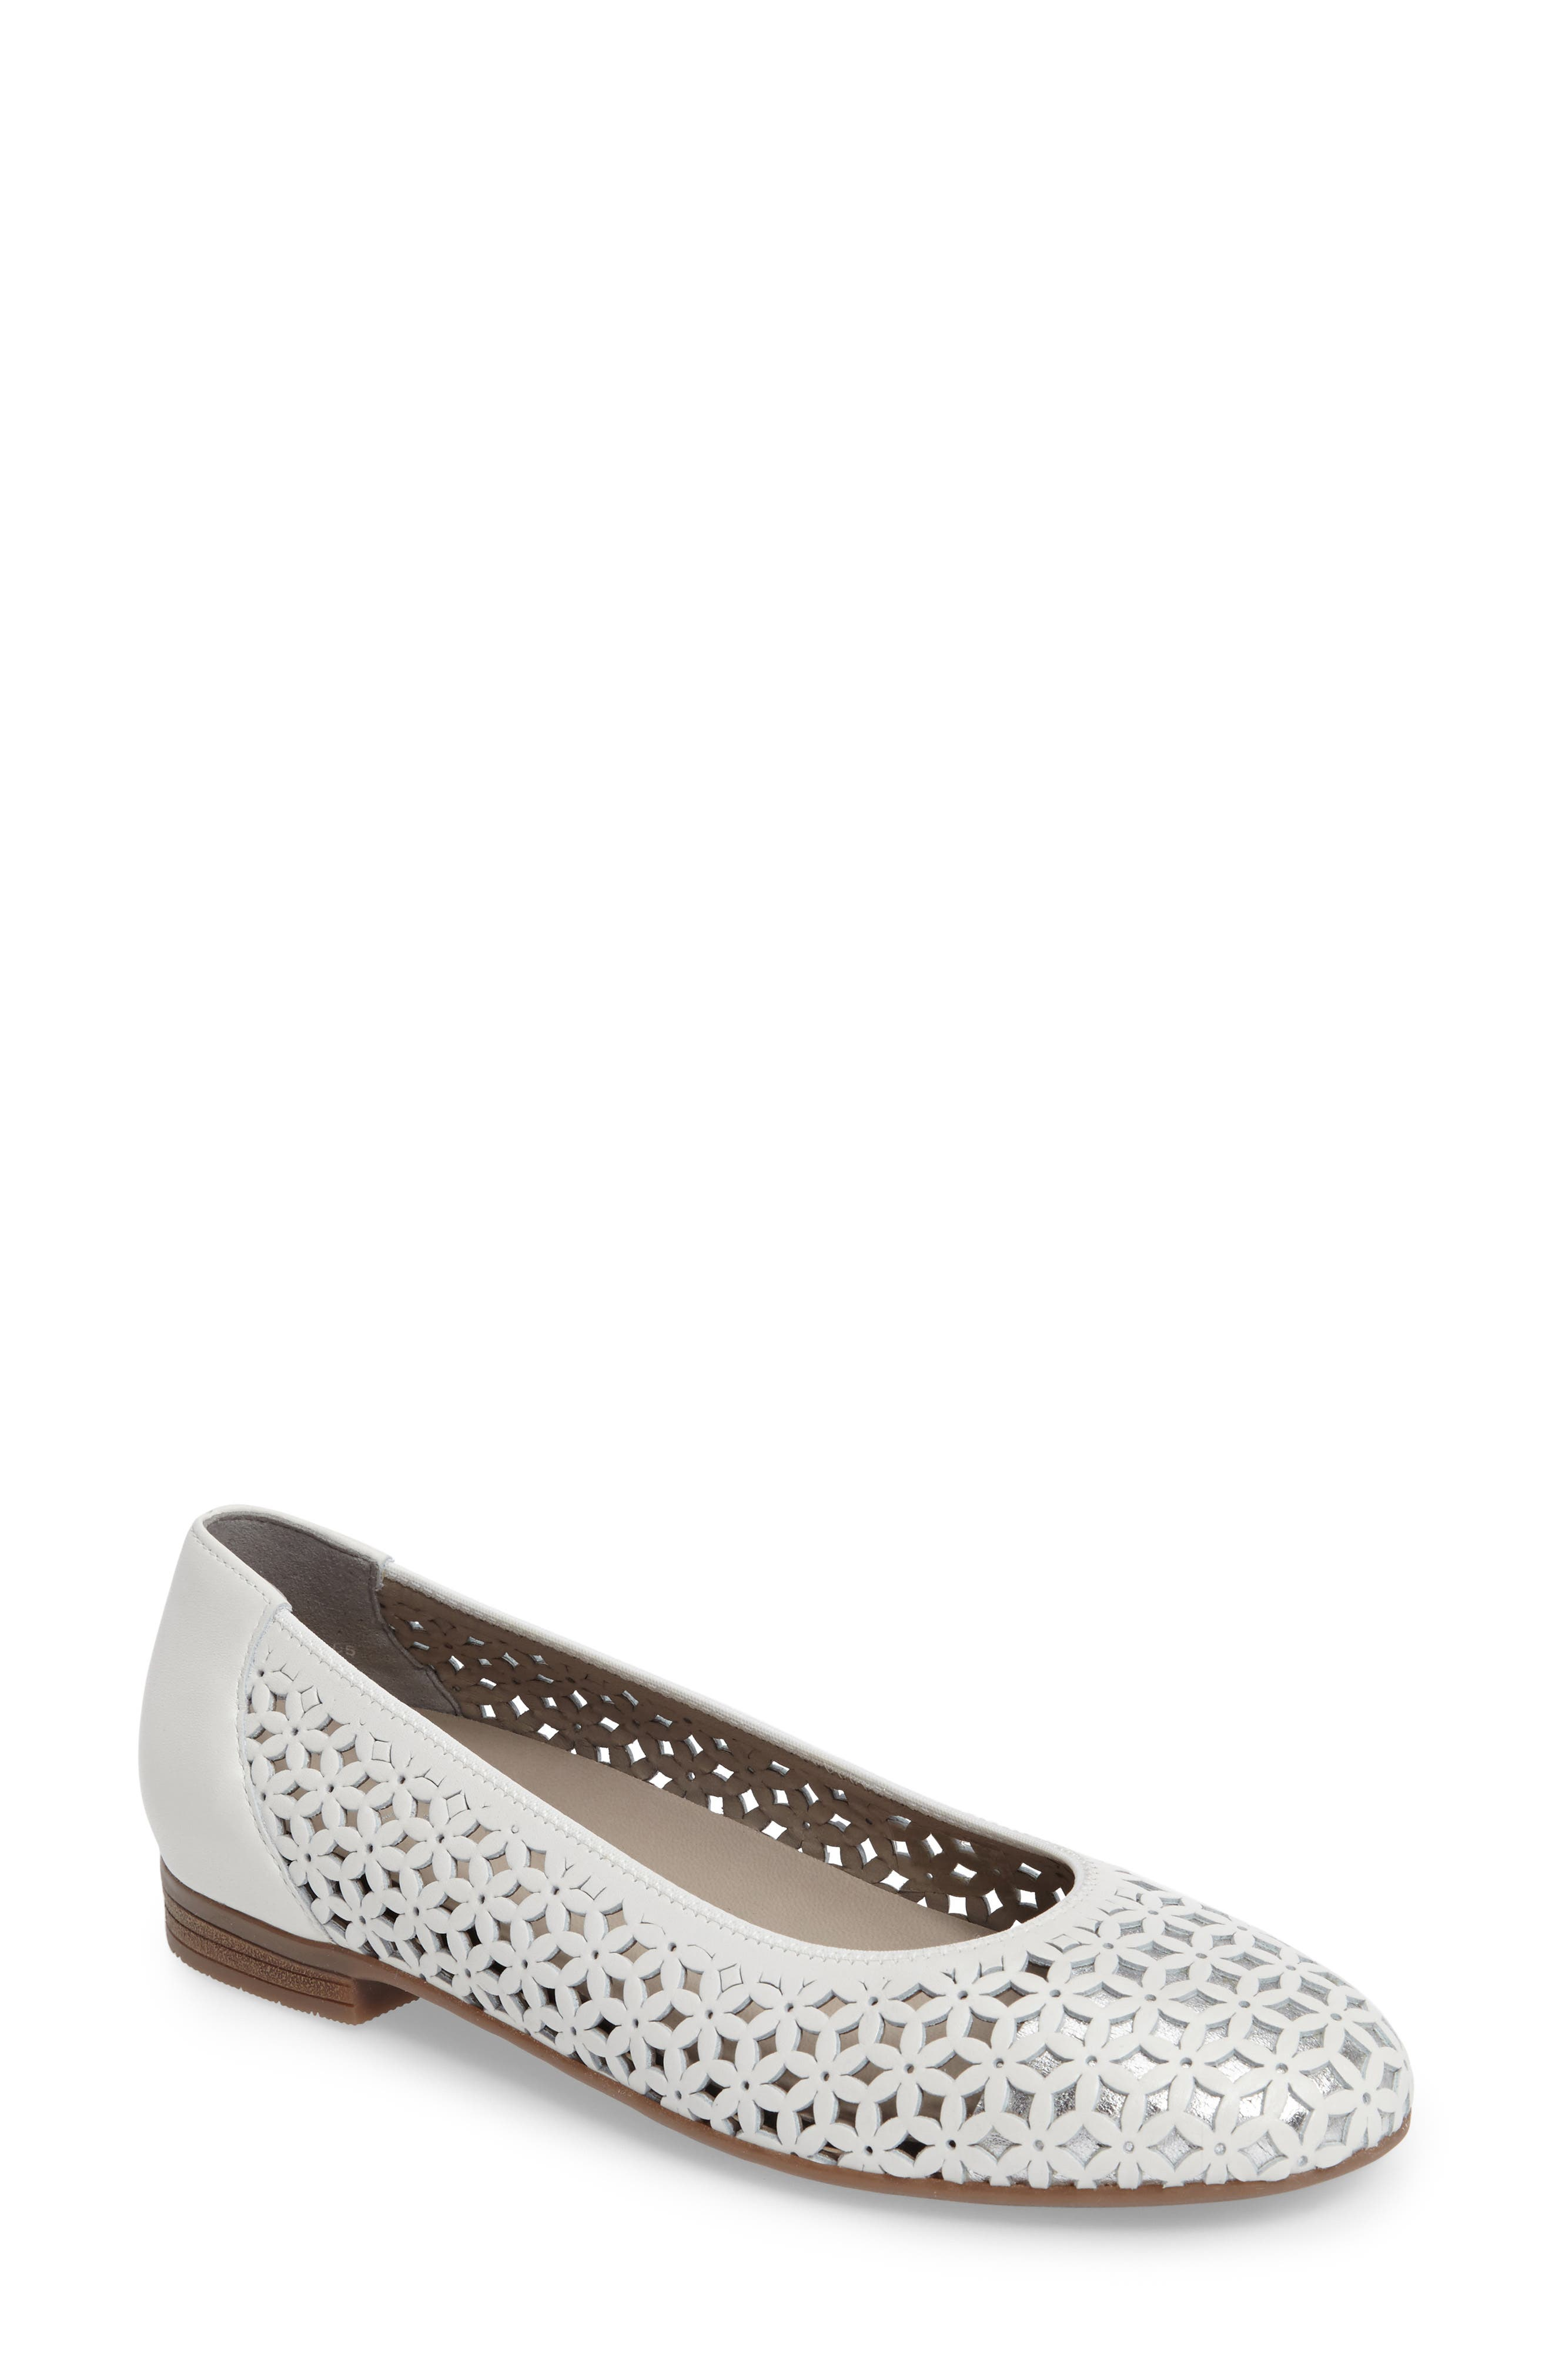 Stephanie Perforated Ballet Flat,                             Main thumbnail 1, color,                             White Leather